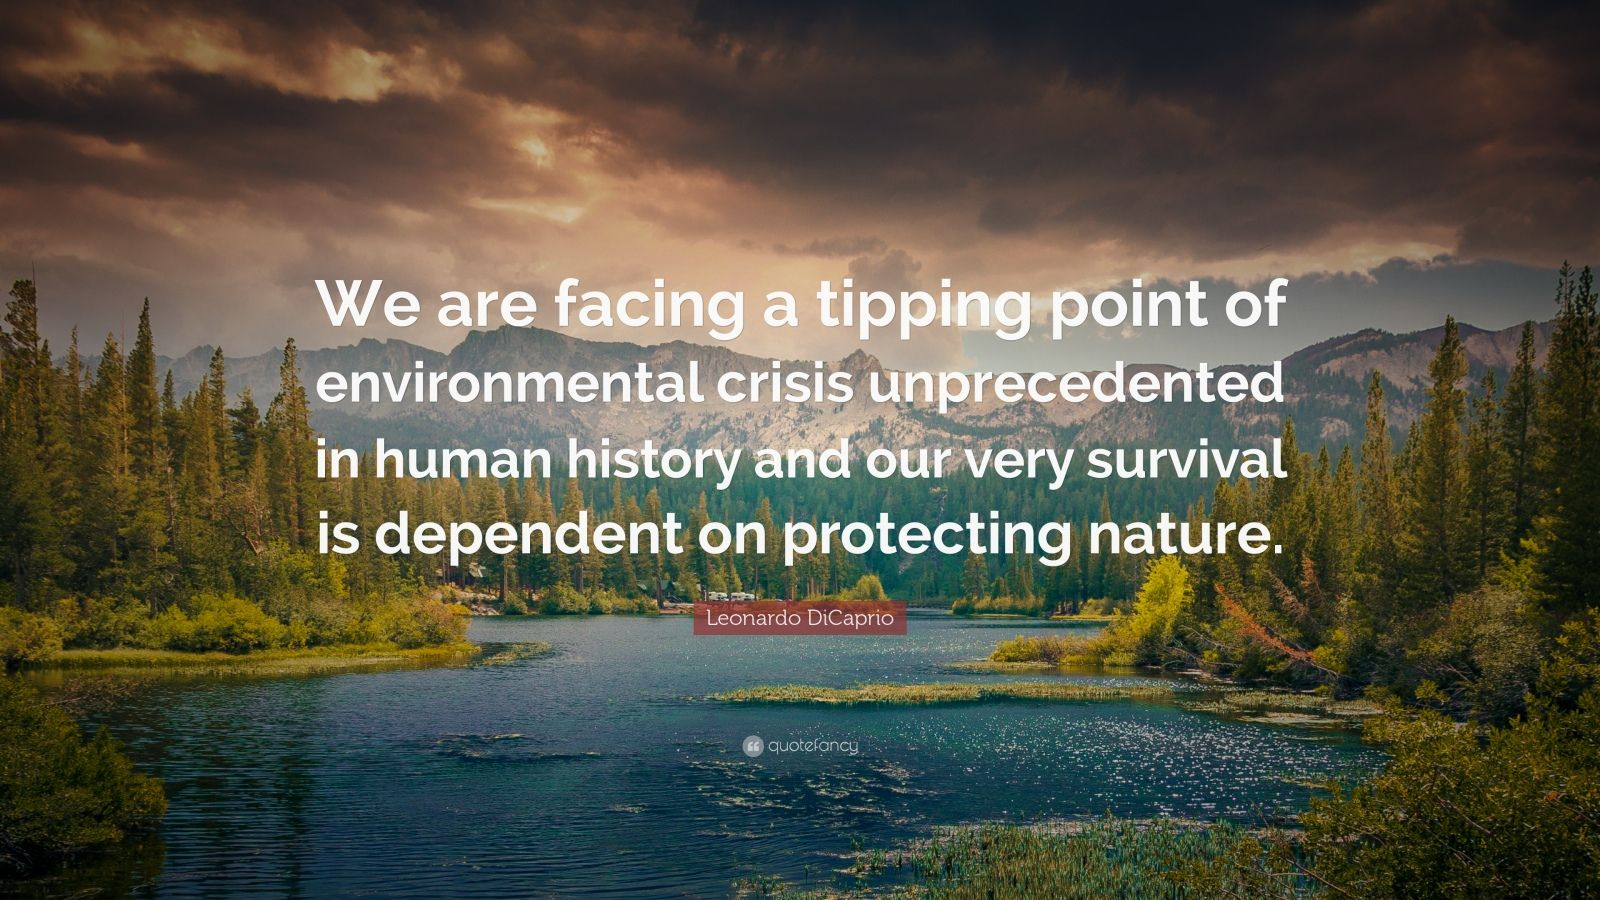 Happy Life Wallpaper With Quotes Leonardo Dicaprio Quote We Are Facing A Tipping Point Of